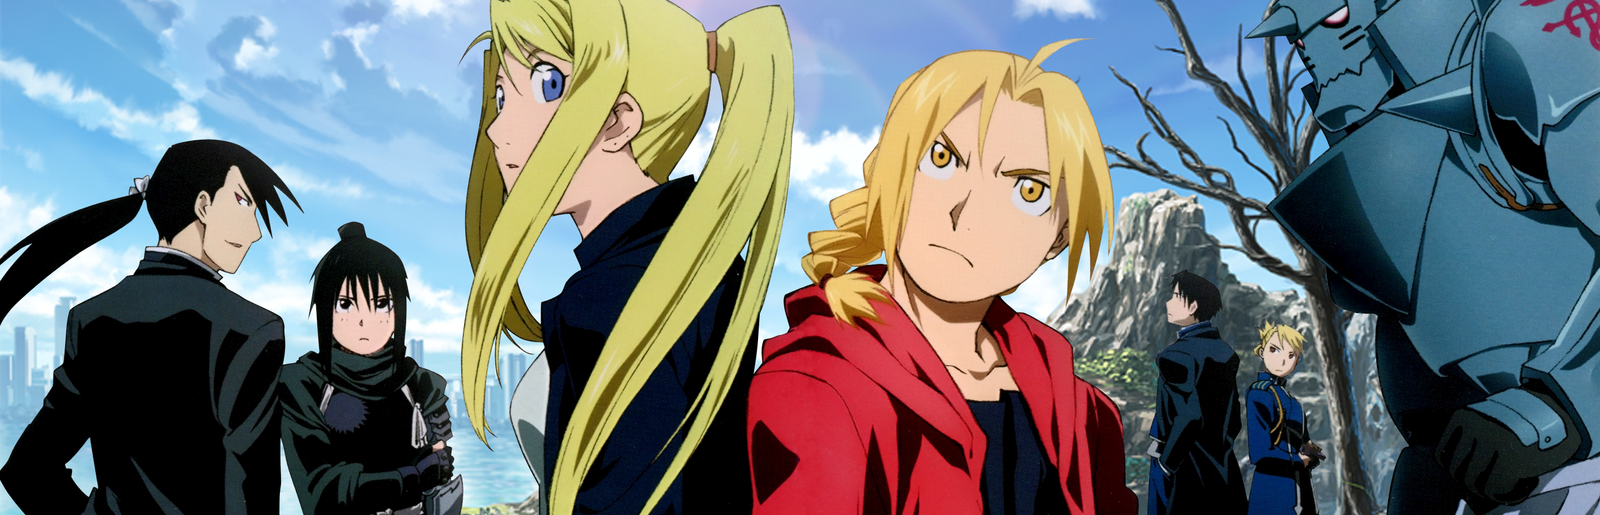 Fullmetal Alchemist: Brotherhood – Rewatch #10